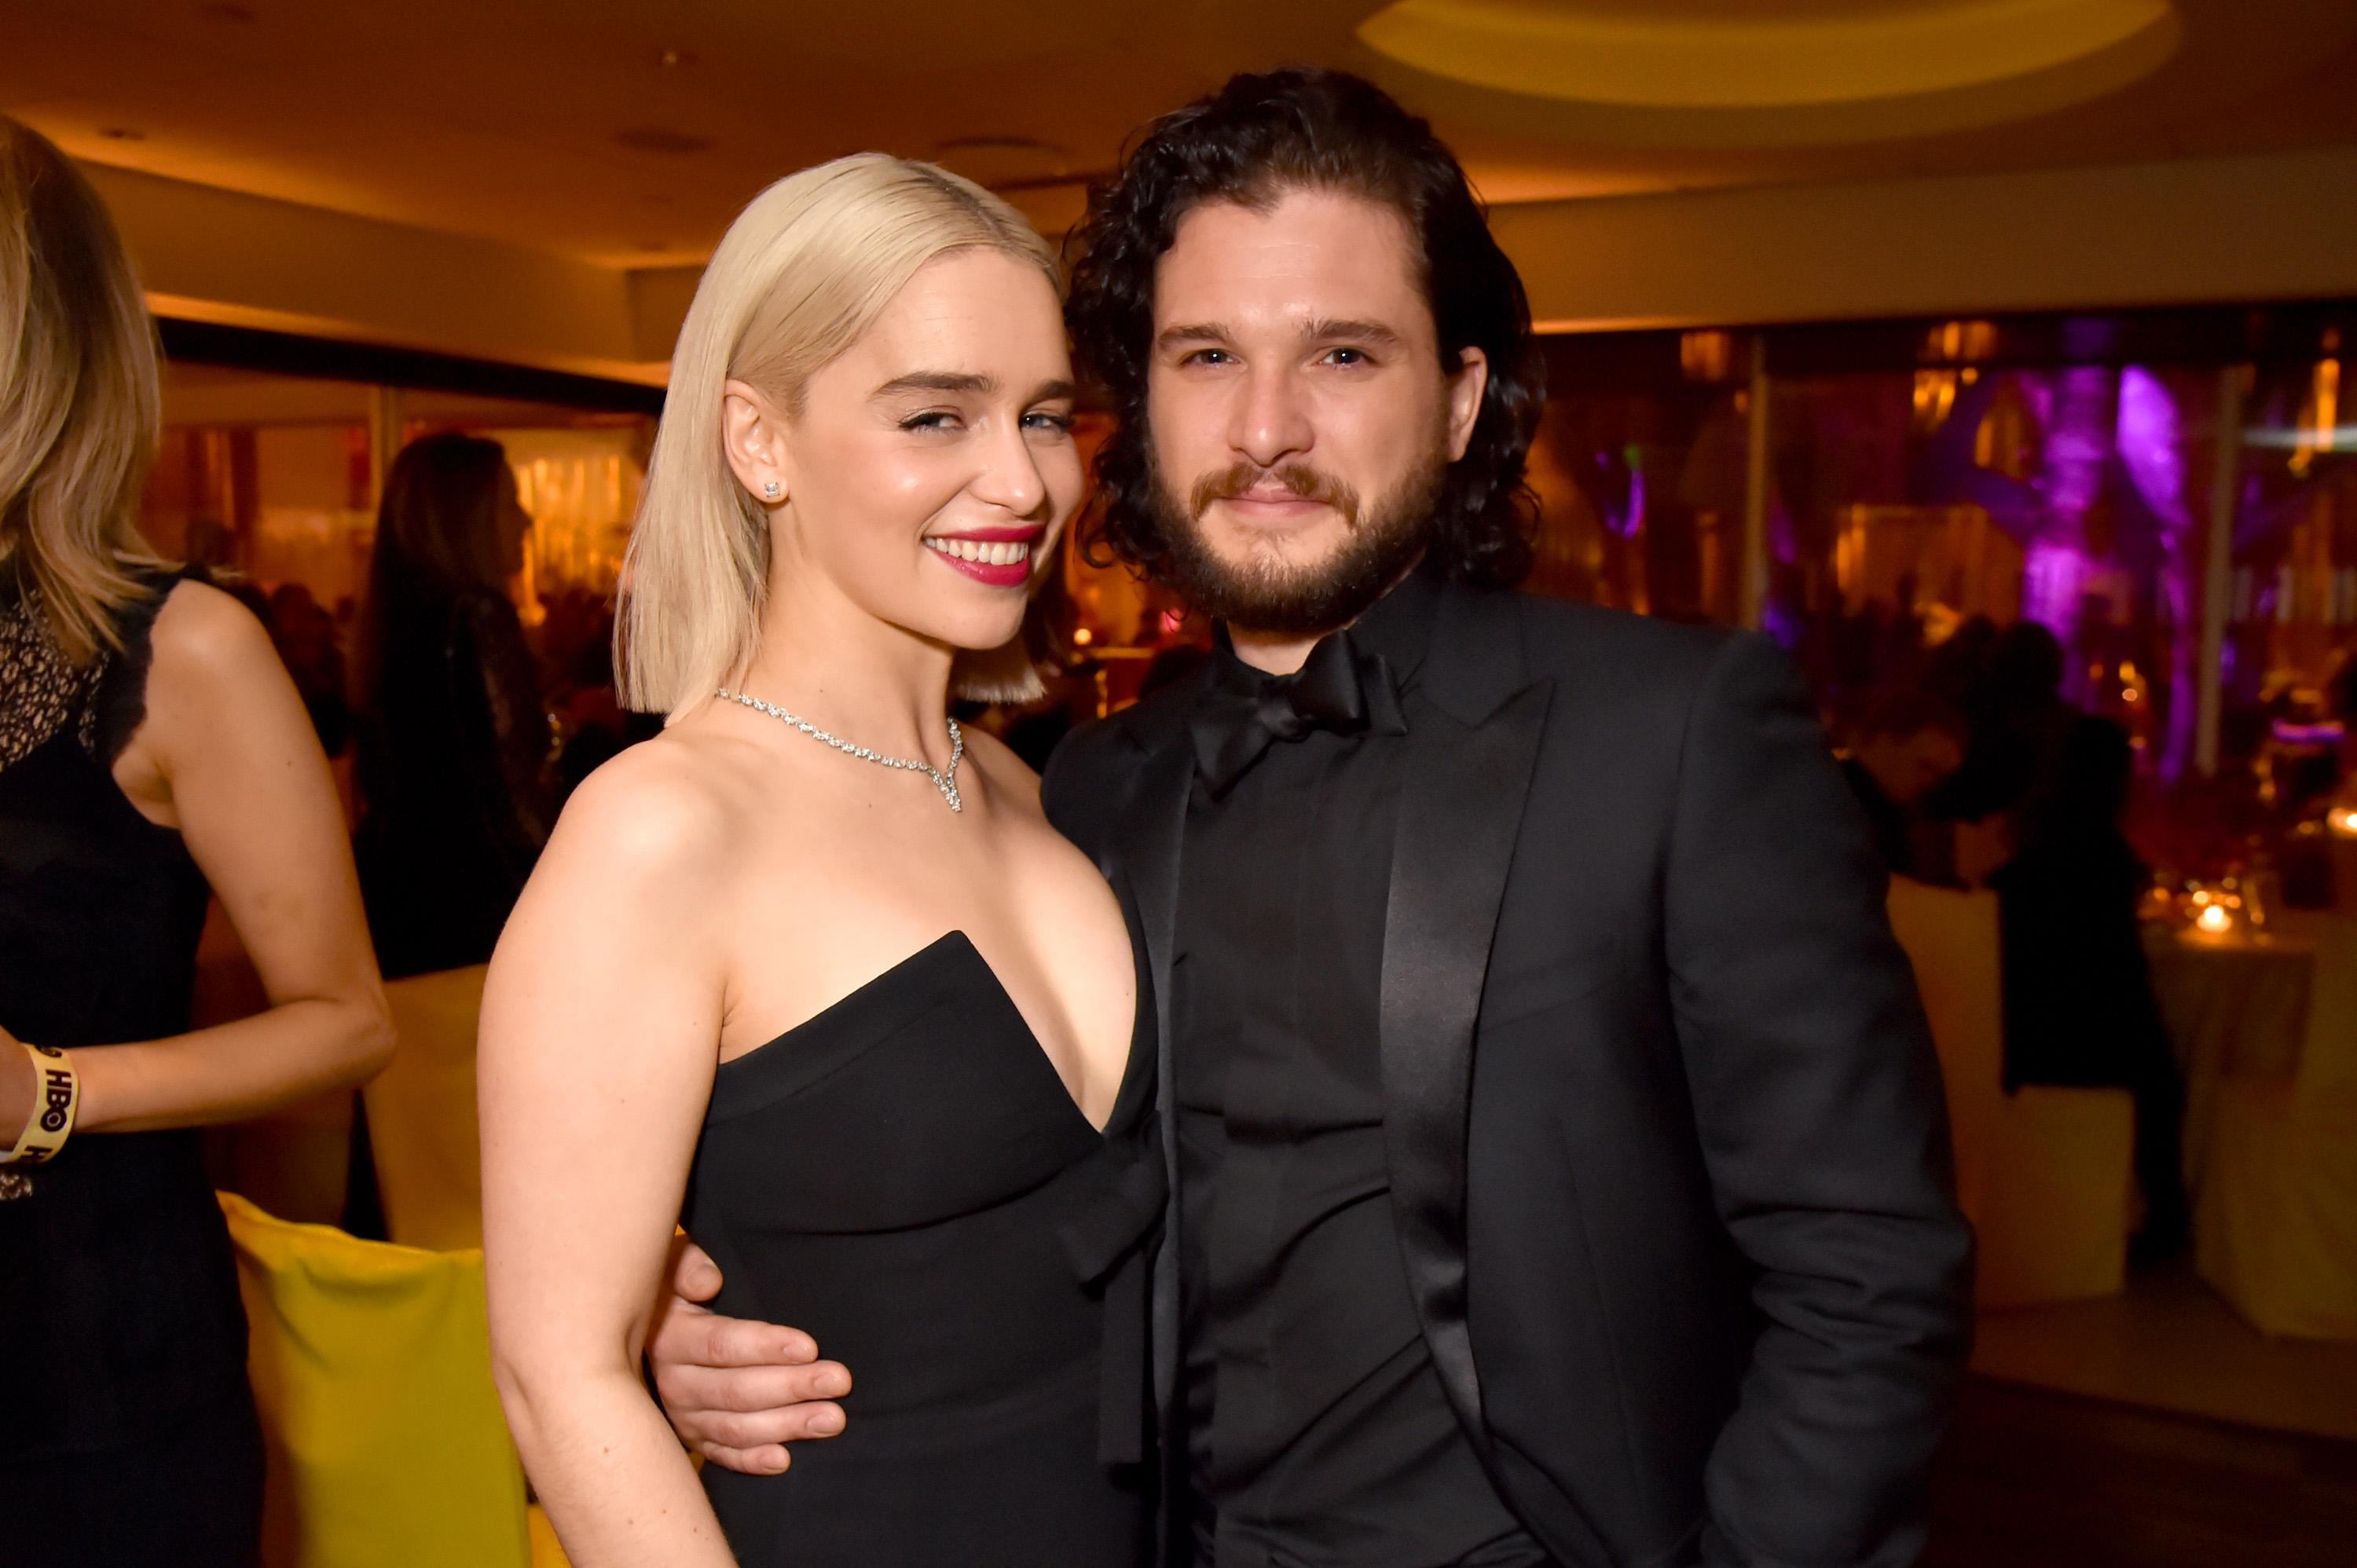 Jon Snow And Daenerys Targaryen Quenched Game Of Thrones Fan